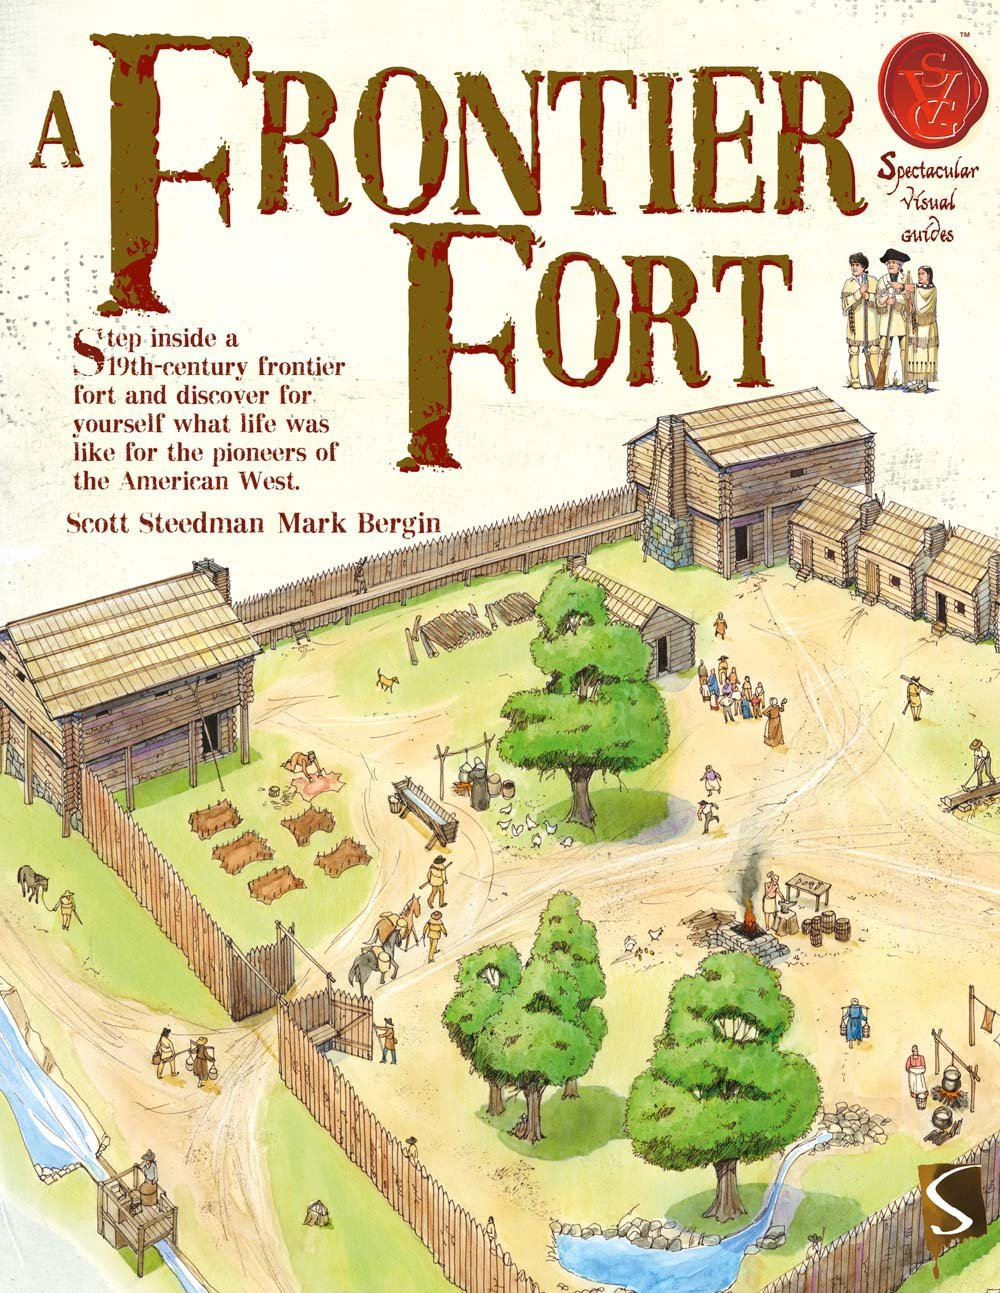 Download A Frontier Fort (Spectacular Visual Guides) PDF